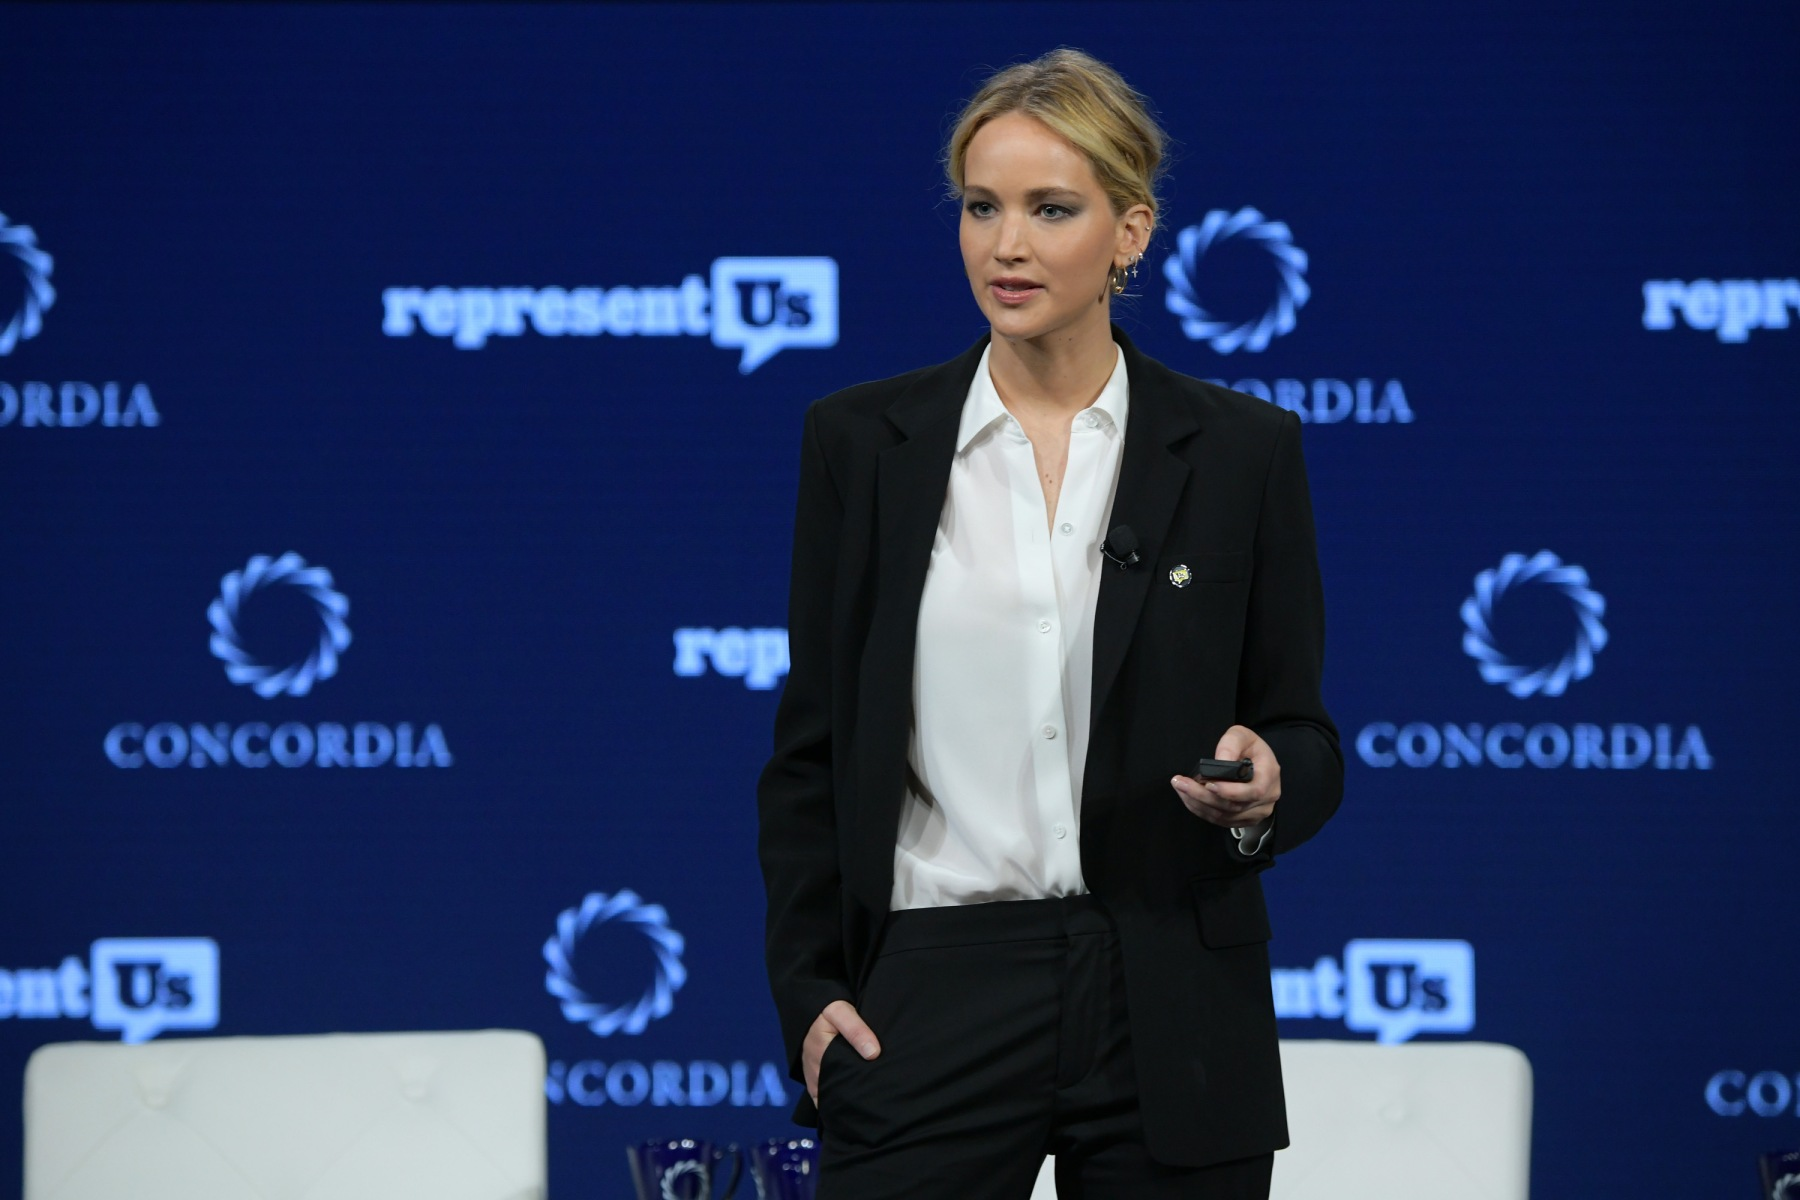 Actor and Board Member of RepresentUs Jennifer Lawrence speaks onstage during the 2018 Concordia Annual Summit - Day 2 at Grand Hyatt New York on September 25, 2018 in New York City.  Lawrence has recently been working with Represent.Us during her year-long sabbatical from acting. (Photo by Leigh Vogel/Getty Images for Concordia Summit)